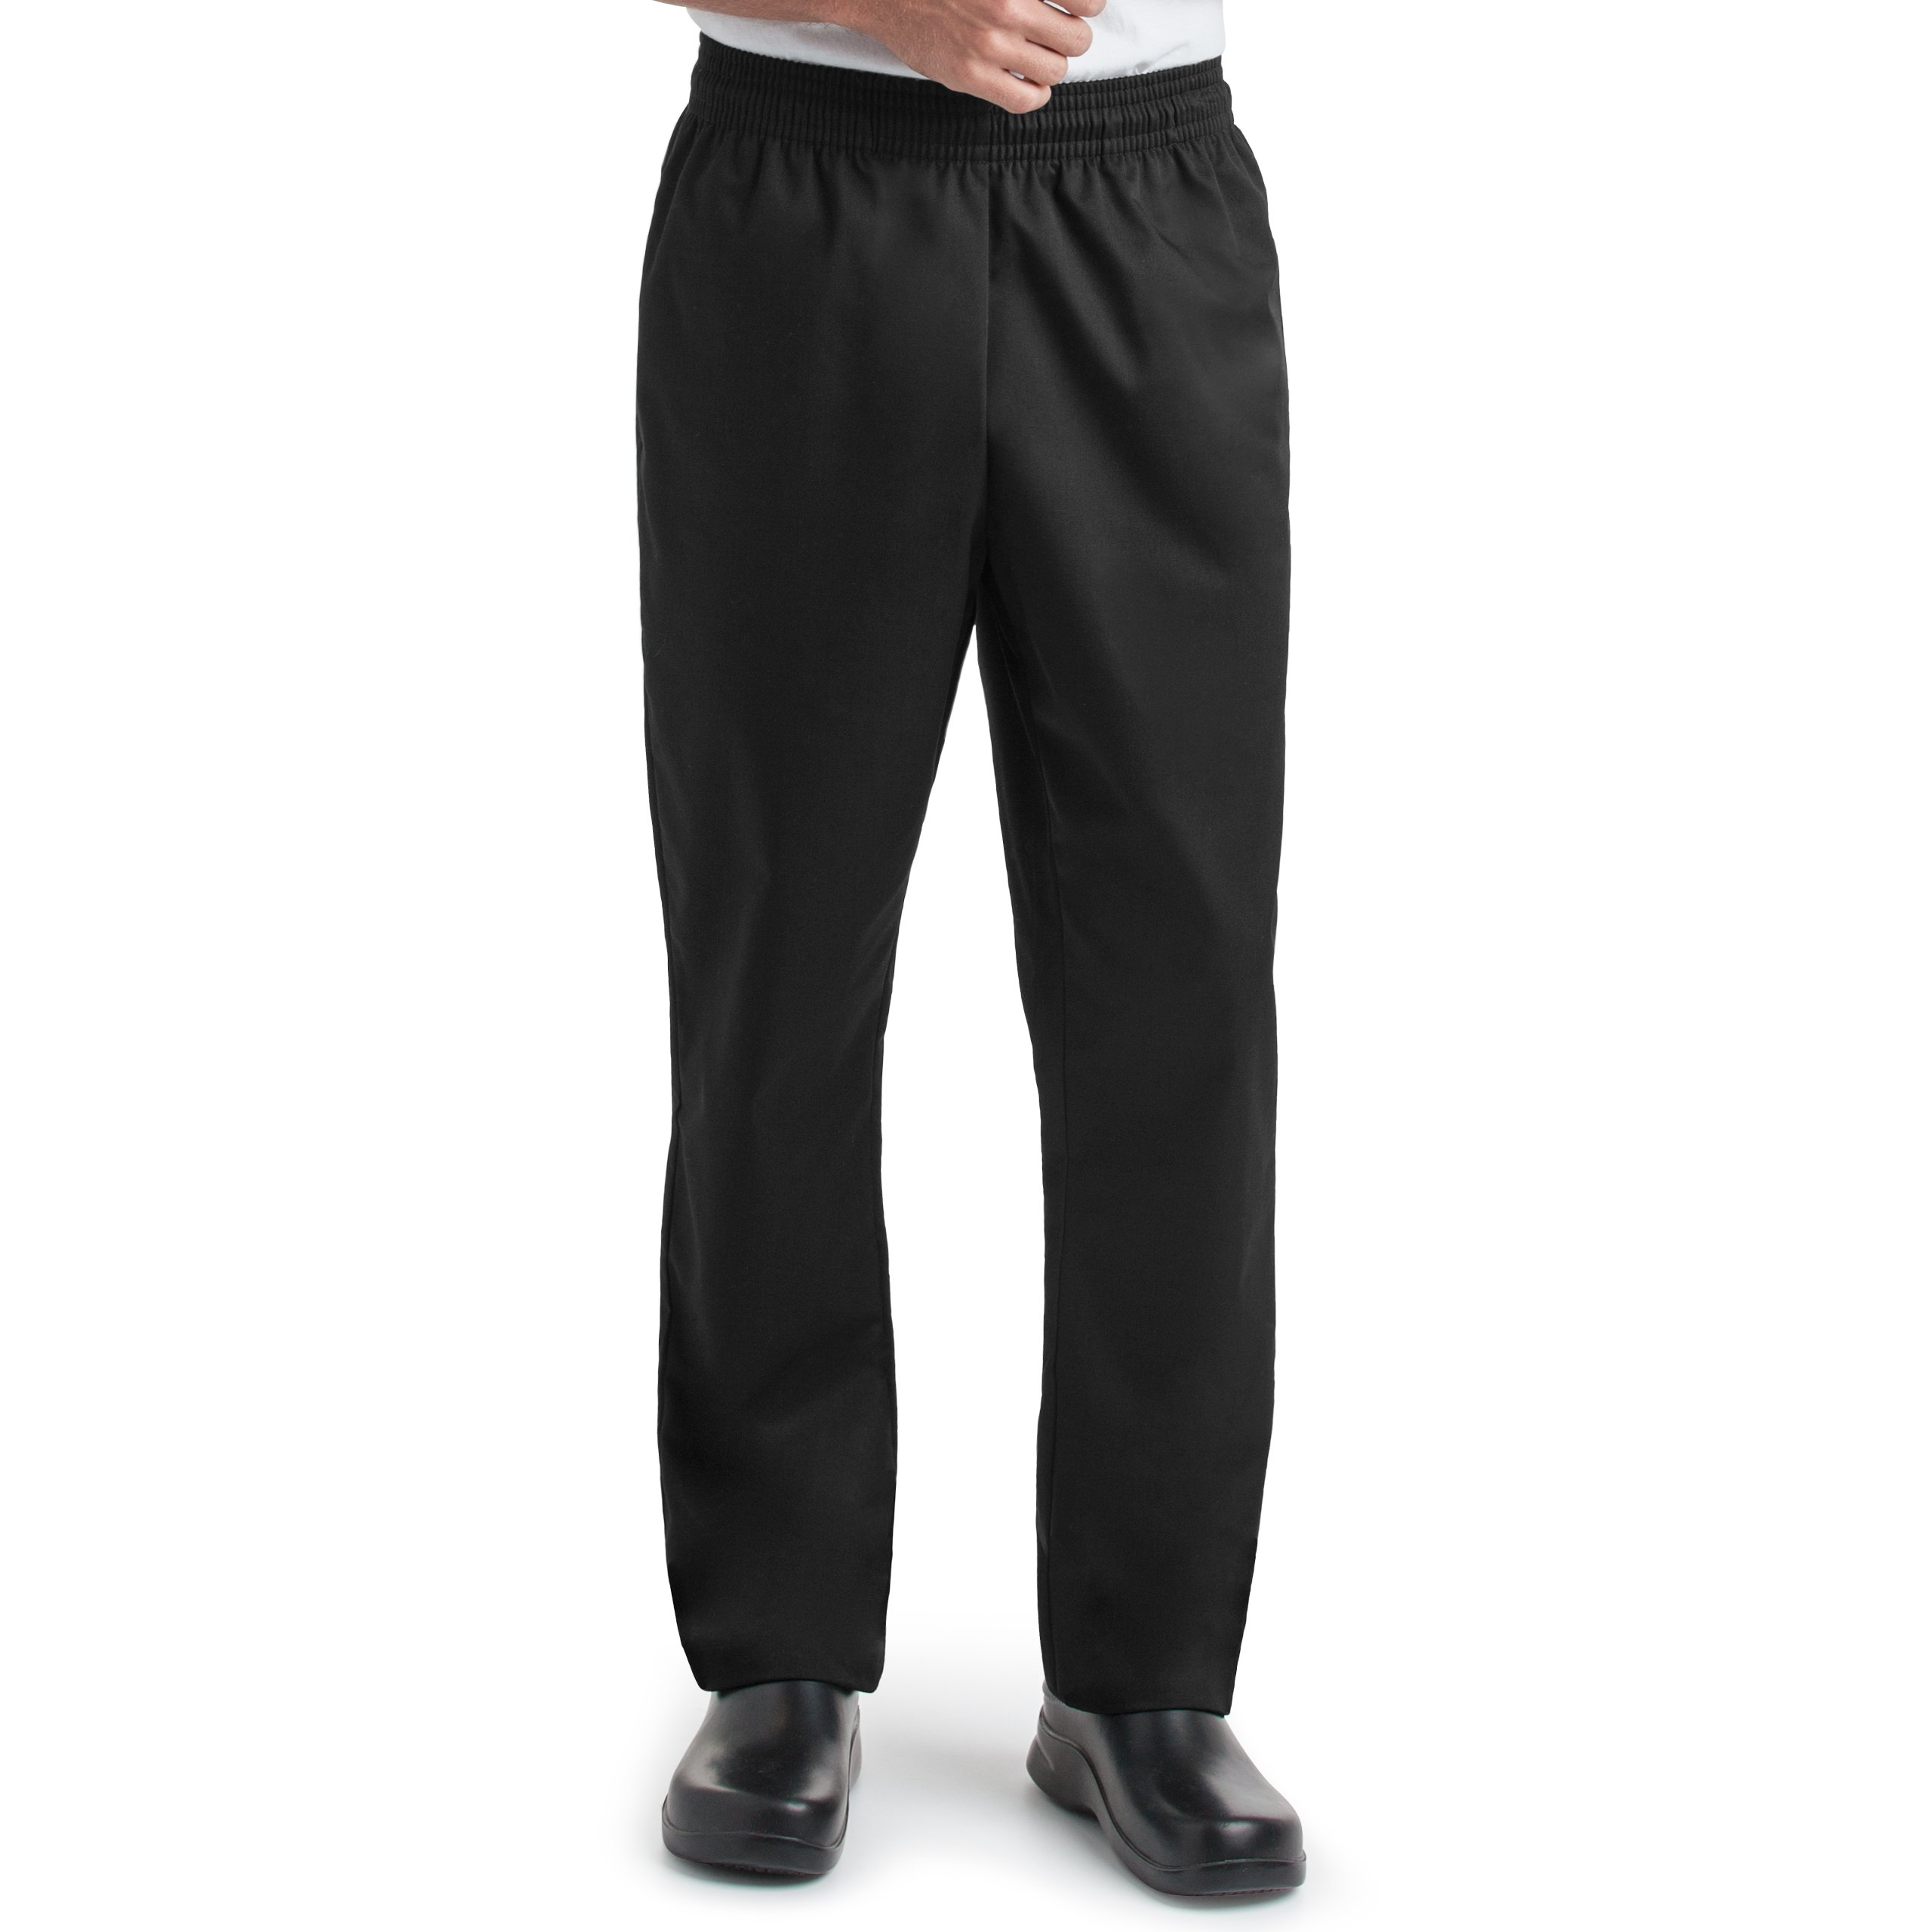 On The Line Unisex Chef Baggy Pants/Elastic Waistband with Tapered Leg/2 Side Pockets and 2 Back Pockets (S-2X) (XX-Large)